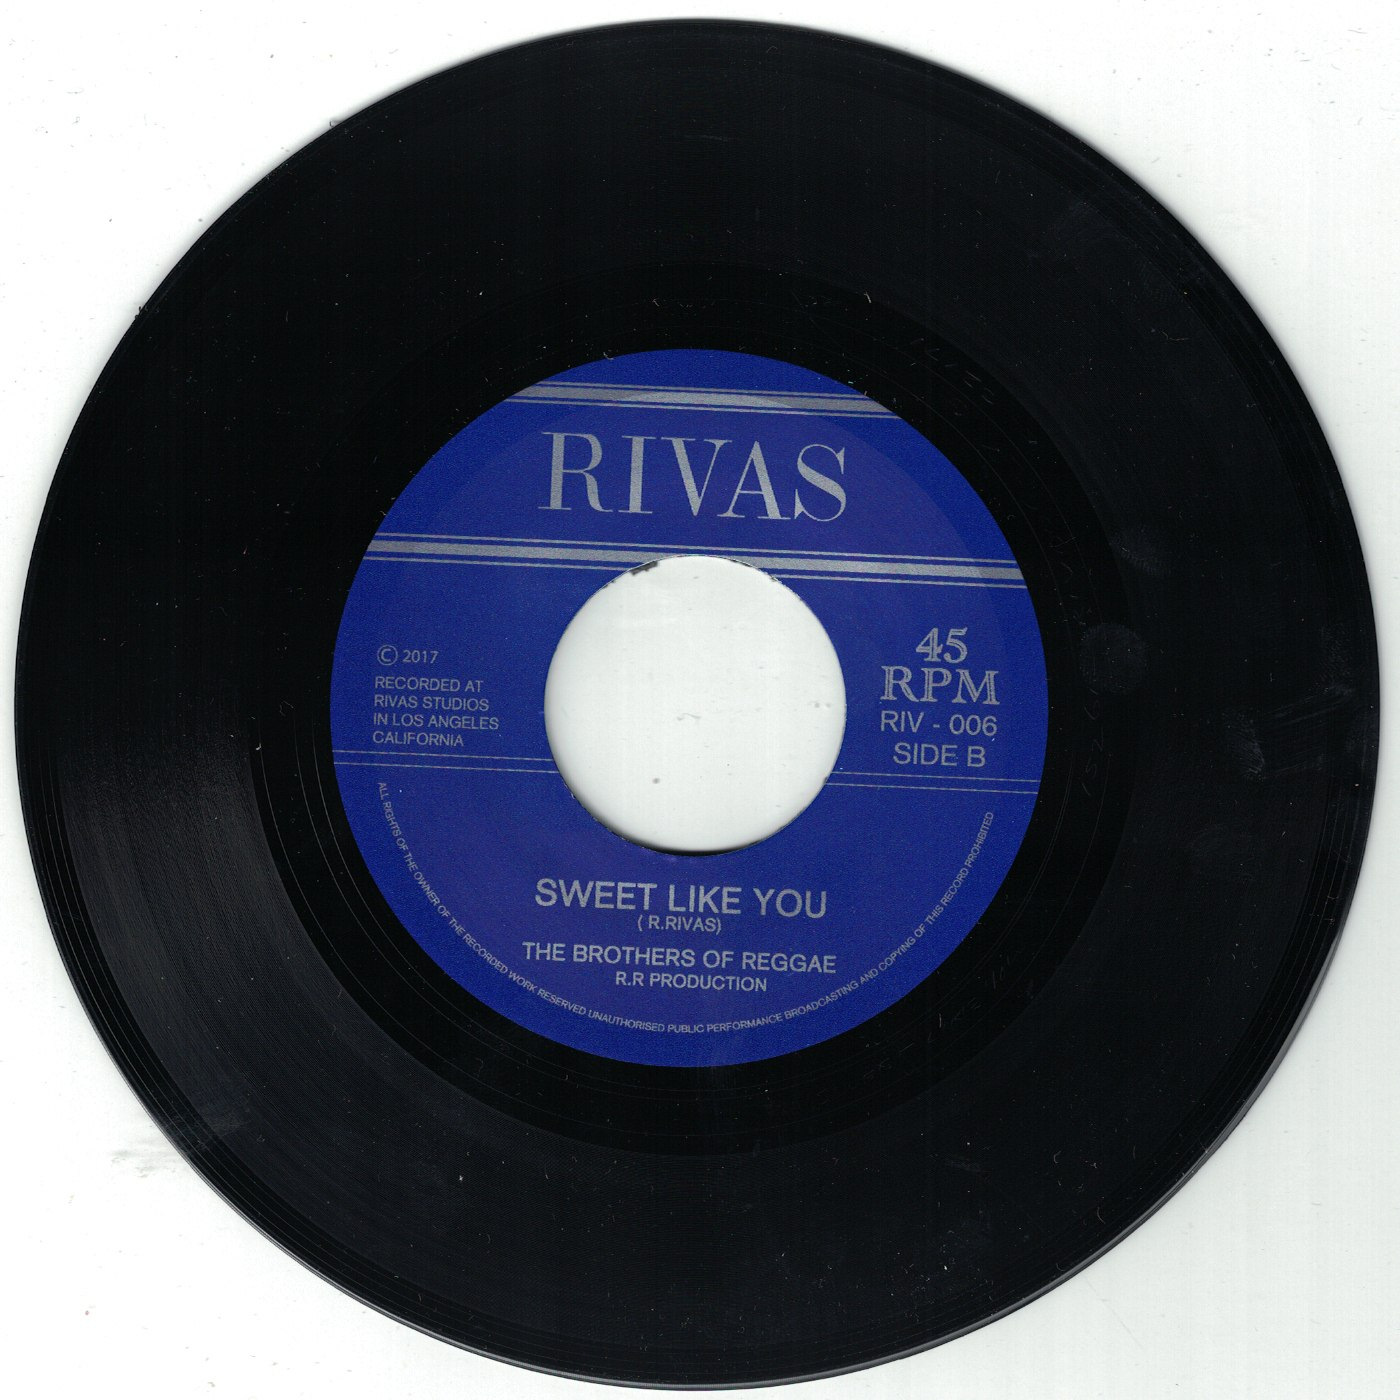 Roger Rivas & The Brothers Of Reggae - Into The Gates / Sweet Like You